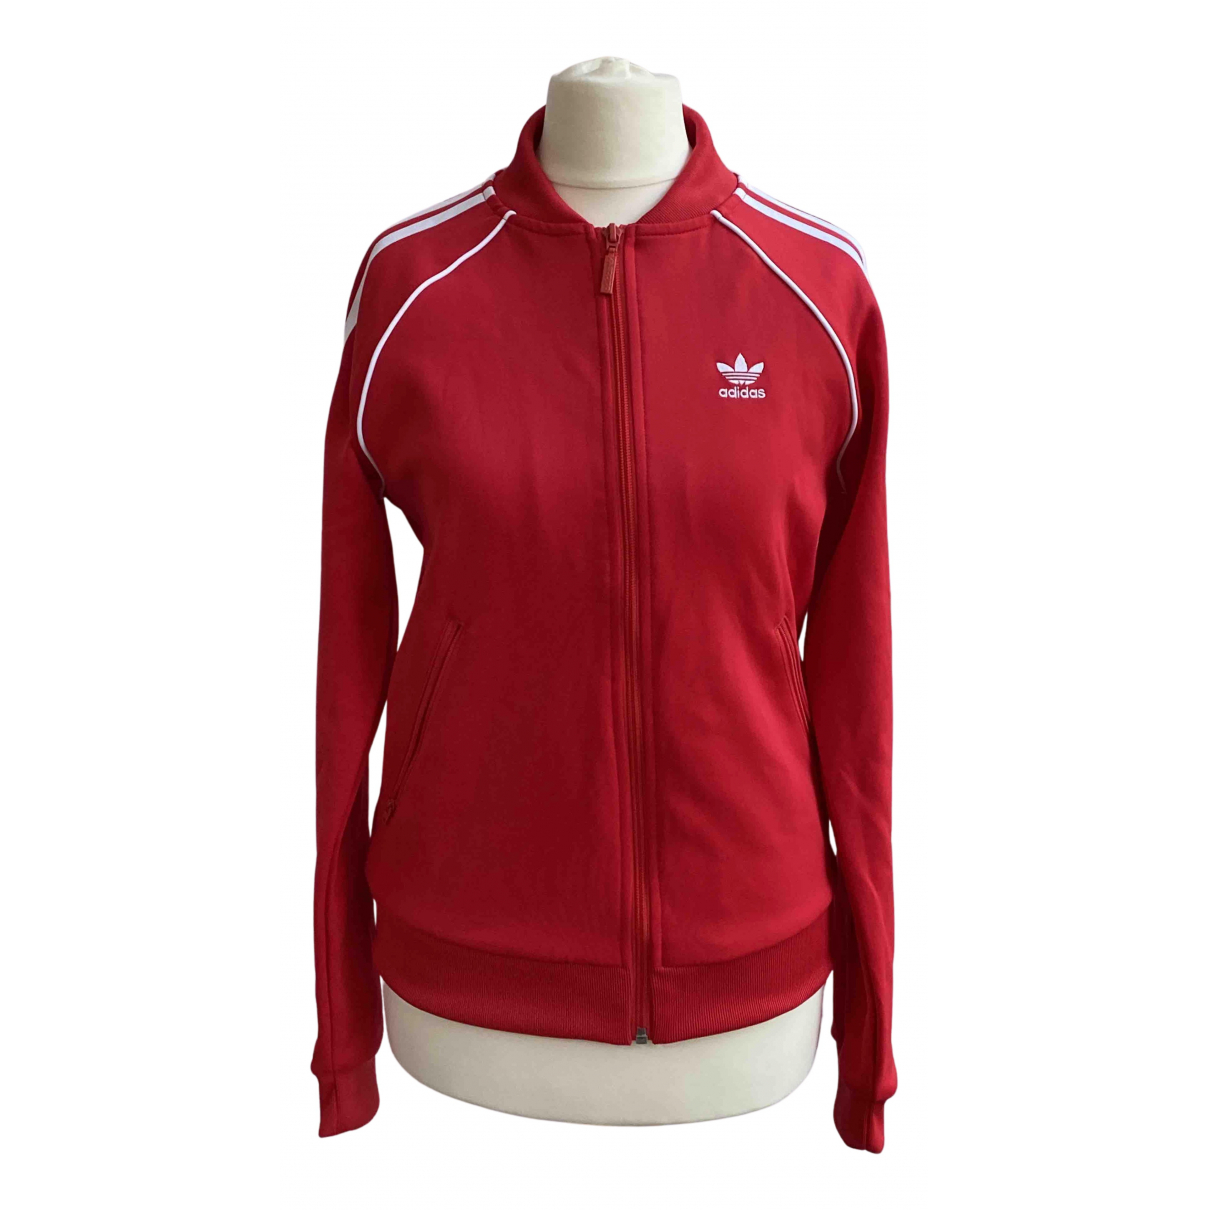 Adidas \N Jacke in  Rot Polyester